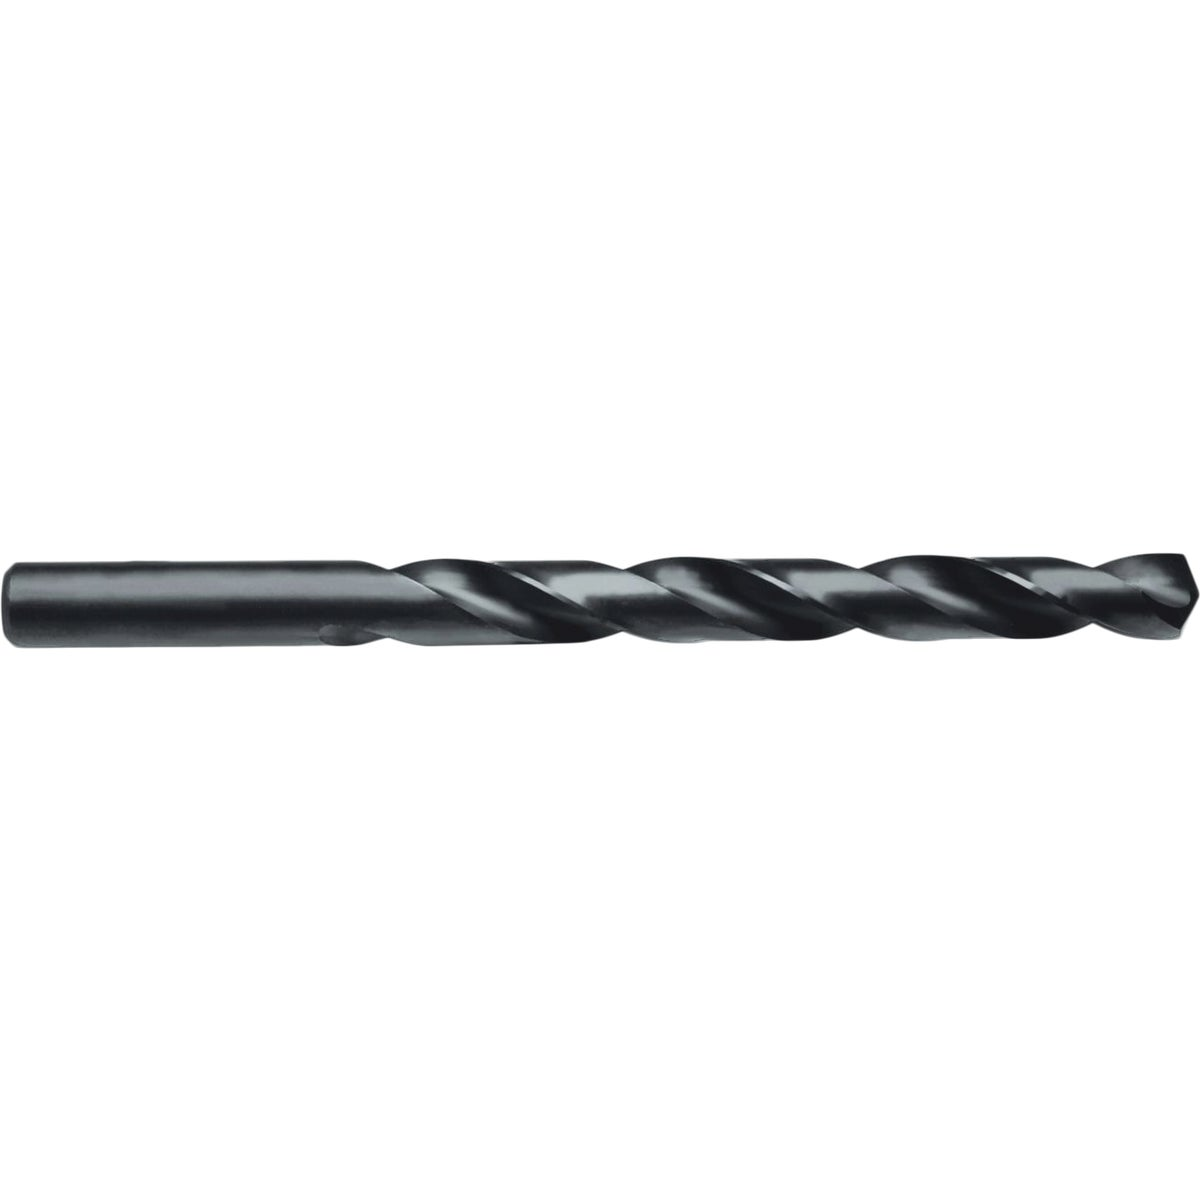 "9/64"" BLACK OXIDE BIT - DW1109 by DeWalt"